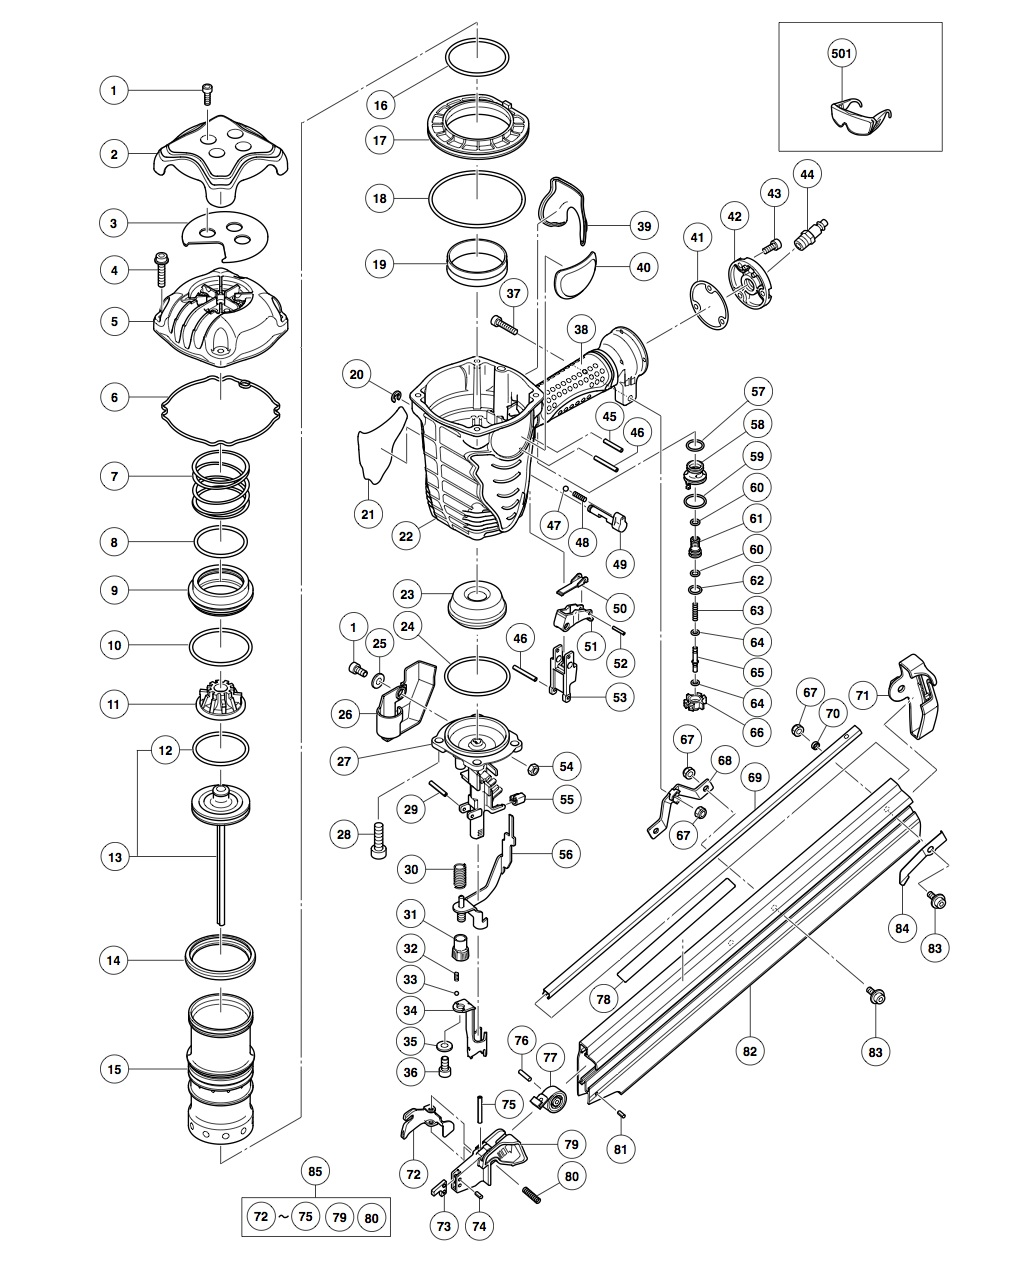 nr90af pneumatic framing nailer parts schematic click to enlarge close slide to zoom image